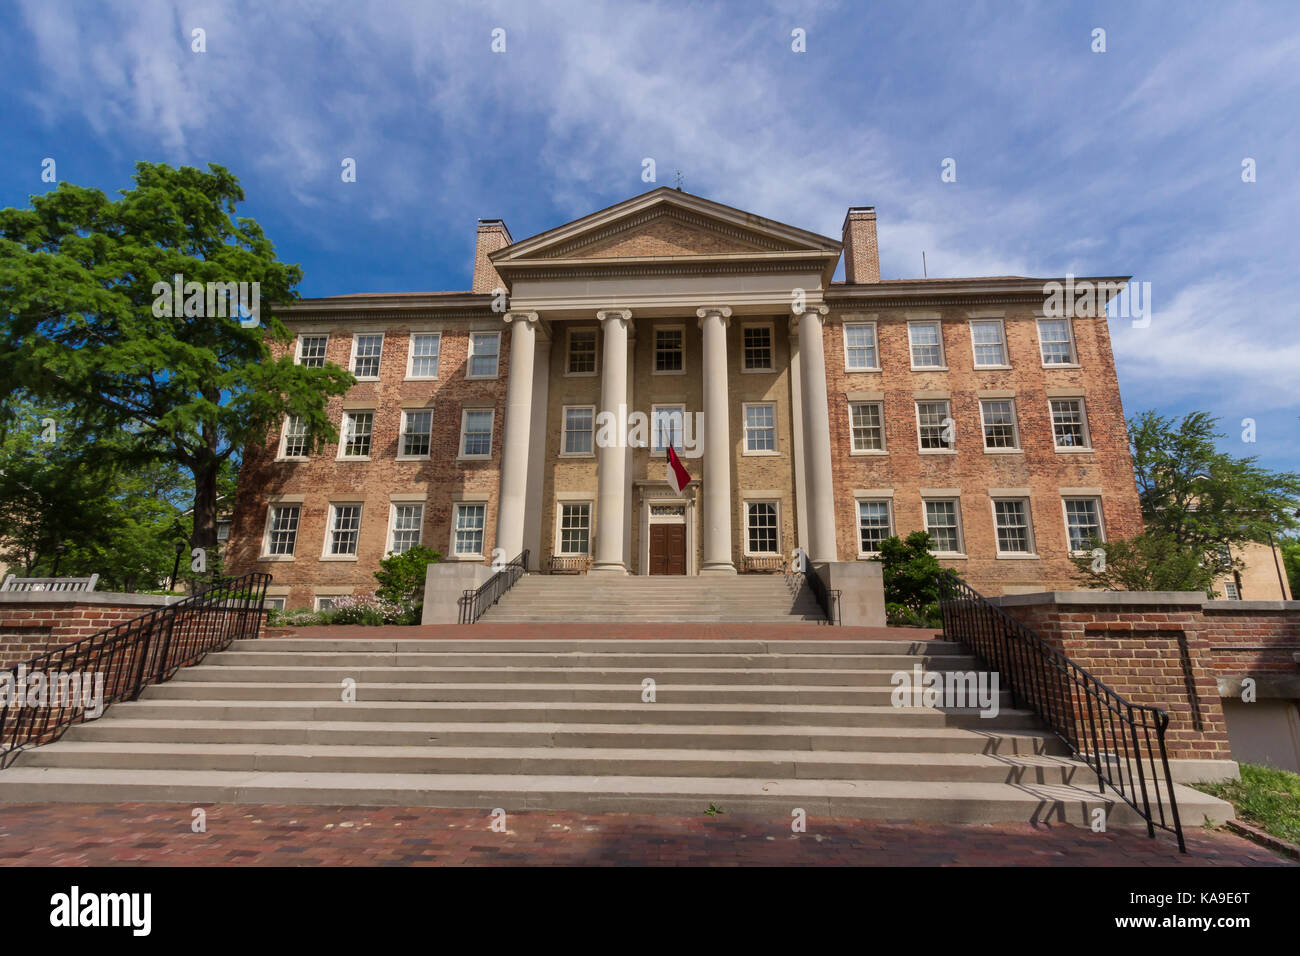 South Building at the University of North Carolina at Chapel Hill in Chapel Hill, North Carolina.  Built in 1814. - Stock Image